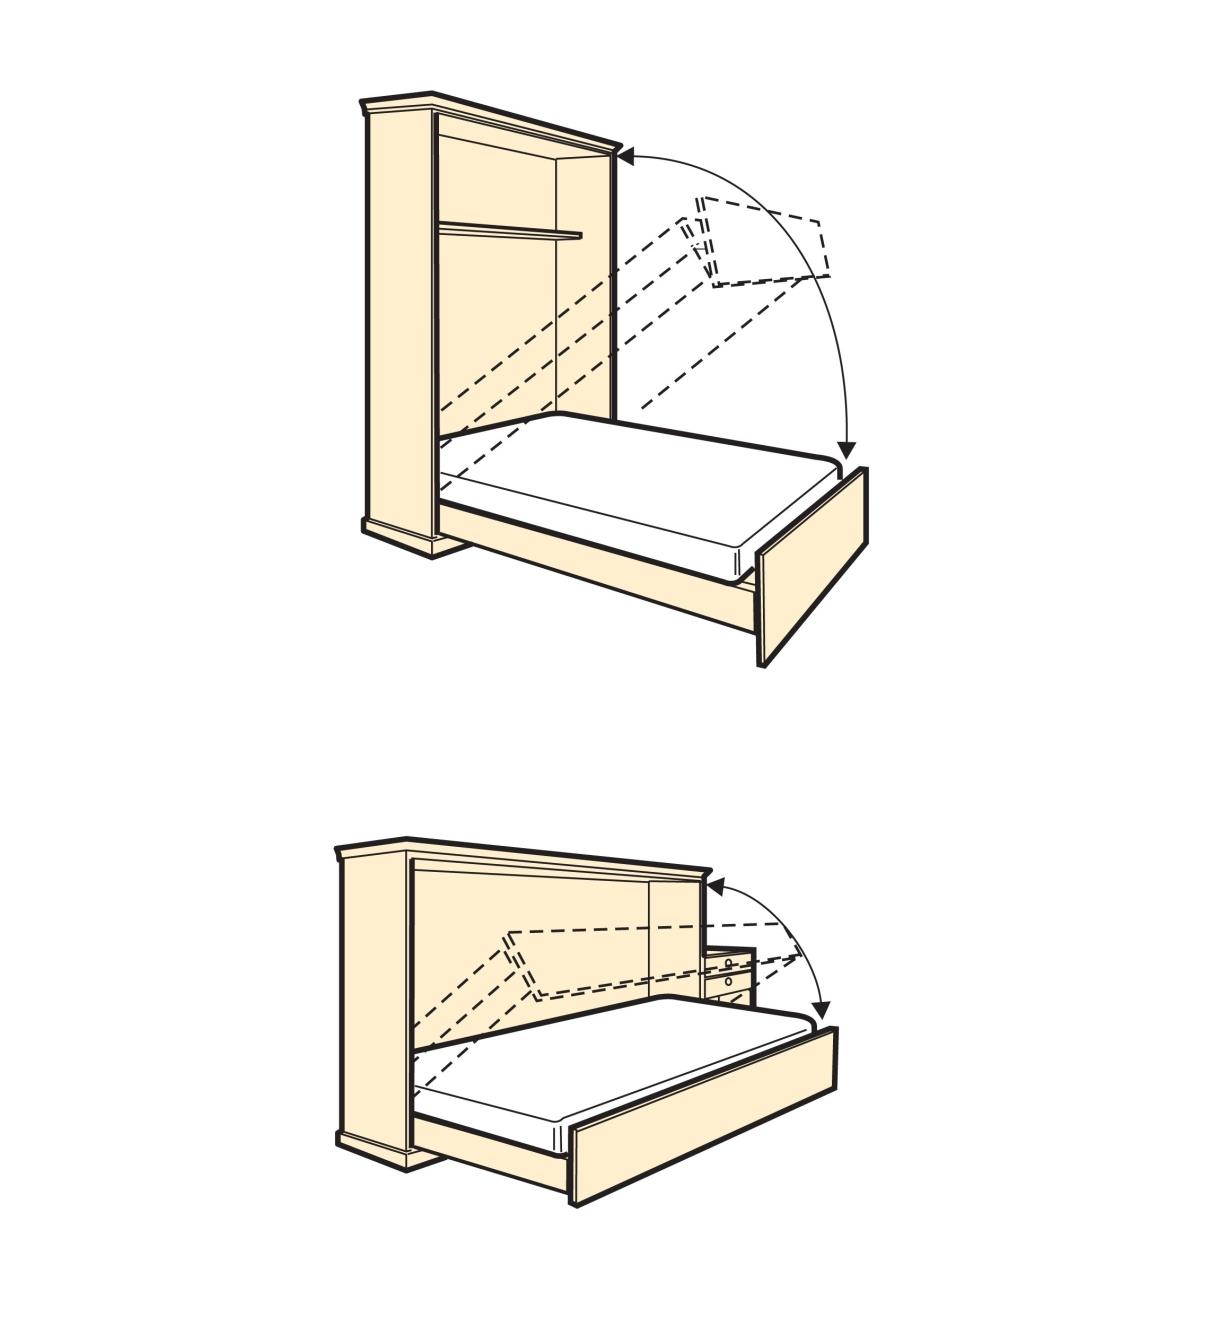 Illustrated examples of vertical and horizontal fold-down beds